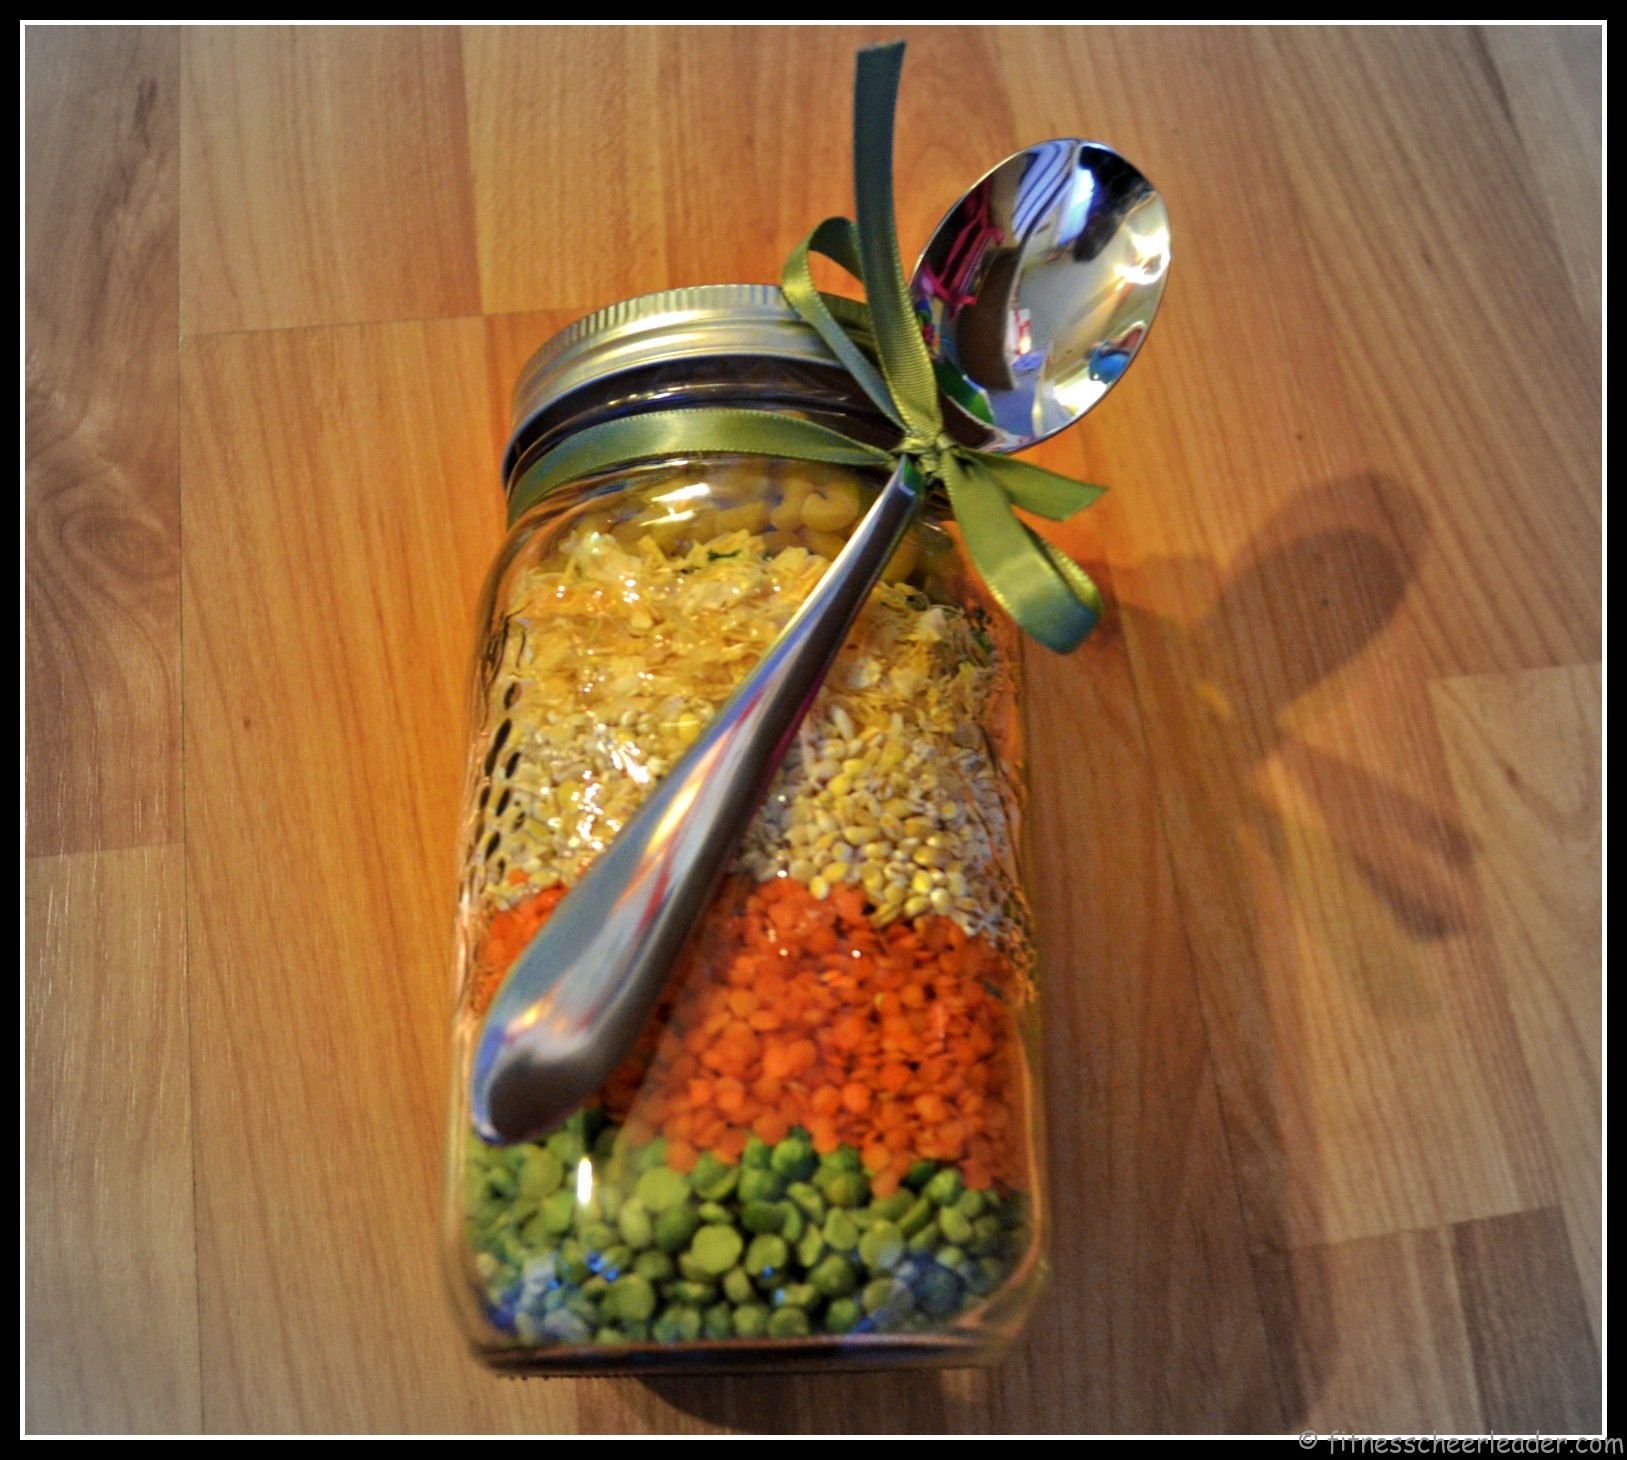 Beefy Bean Soup Mix in a Jar